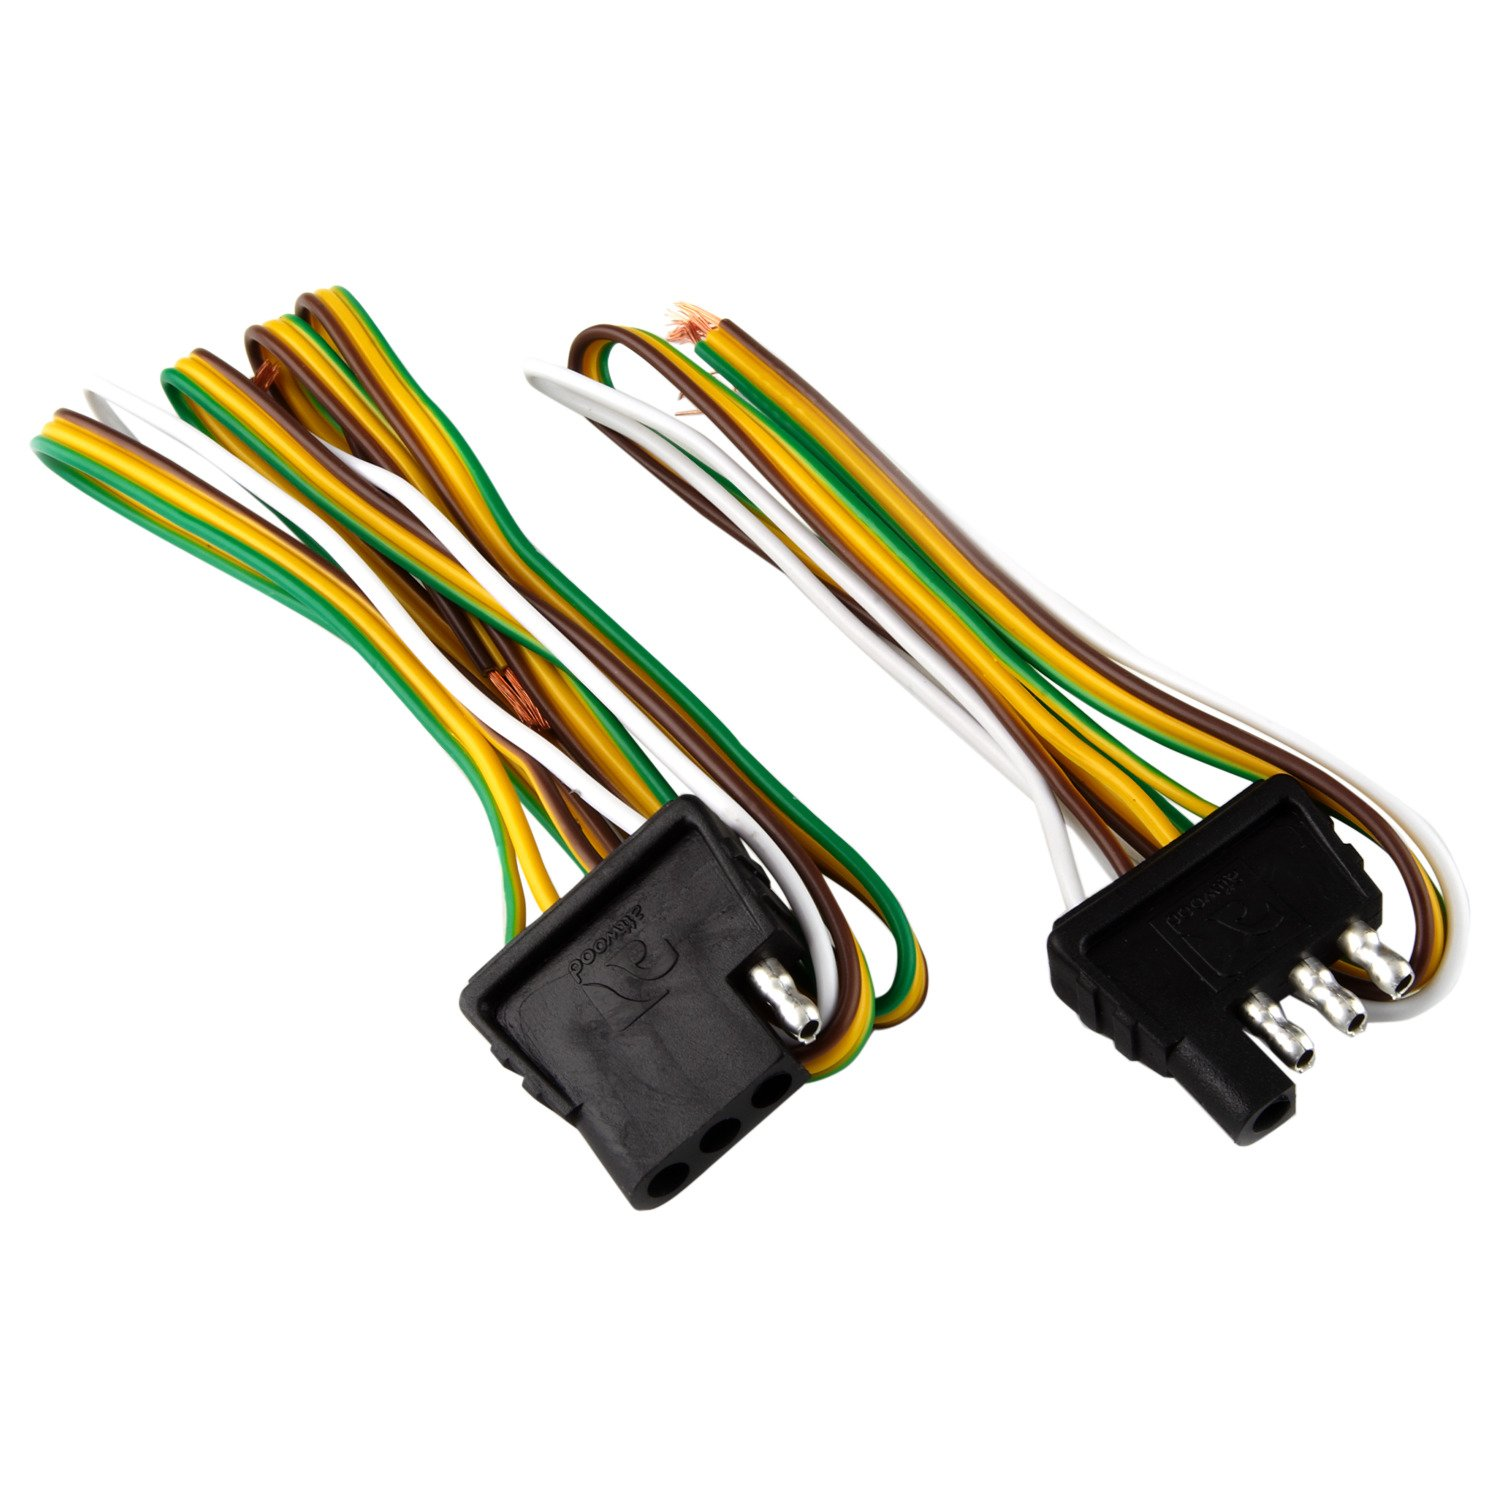 hight resolution of attwood 4 way flat wiring harness kit for vehicles and trailers audi tt wiring harness trailer wiring harness trailers